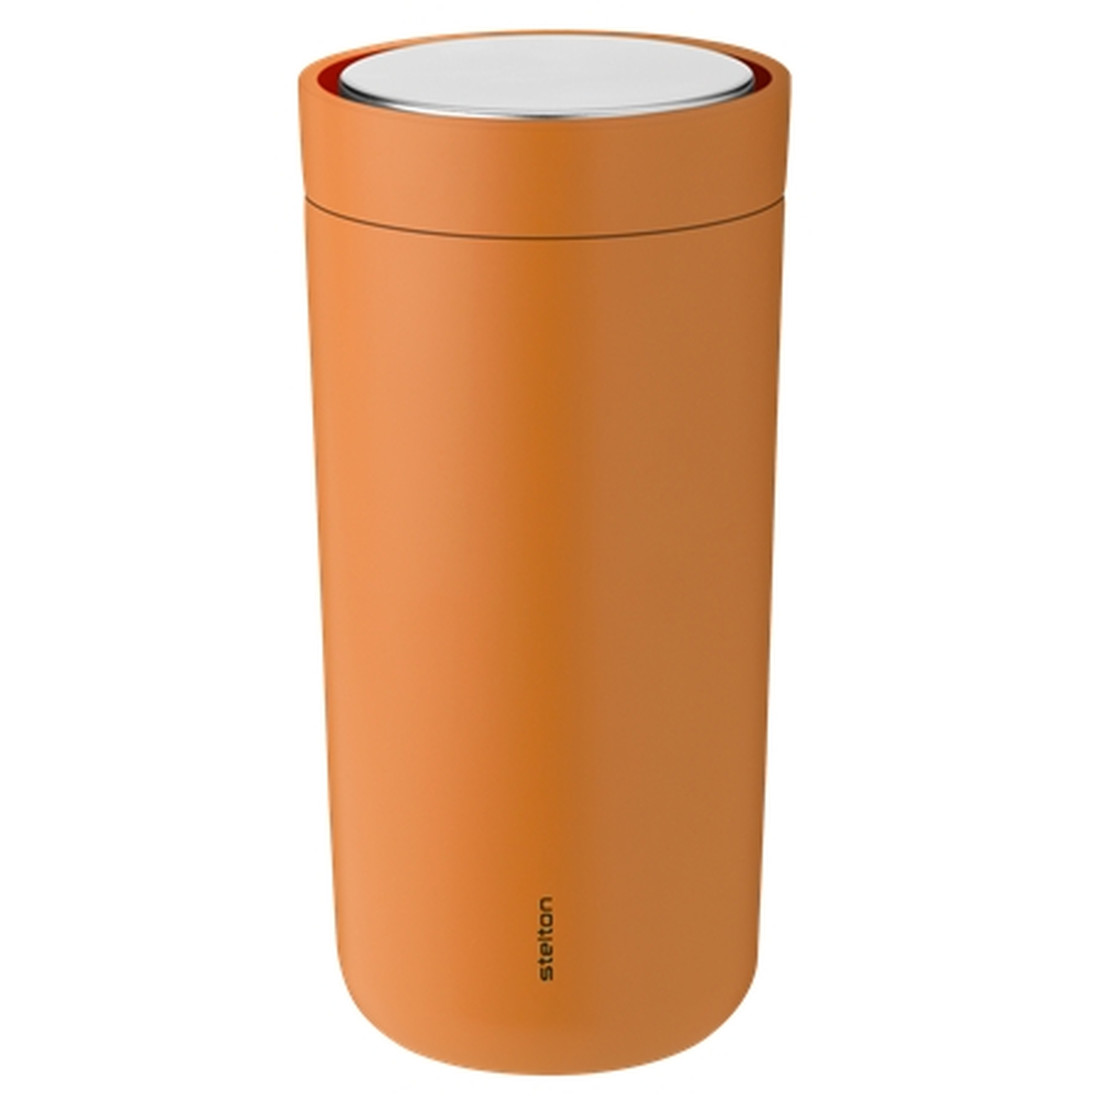 To Go Click Thermobecher Edelstahl 0,4l - soft orqange by stelton